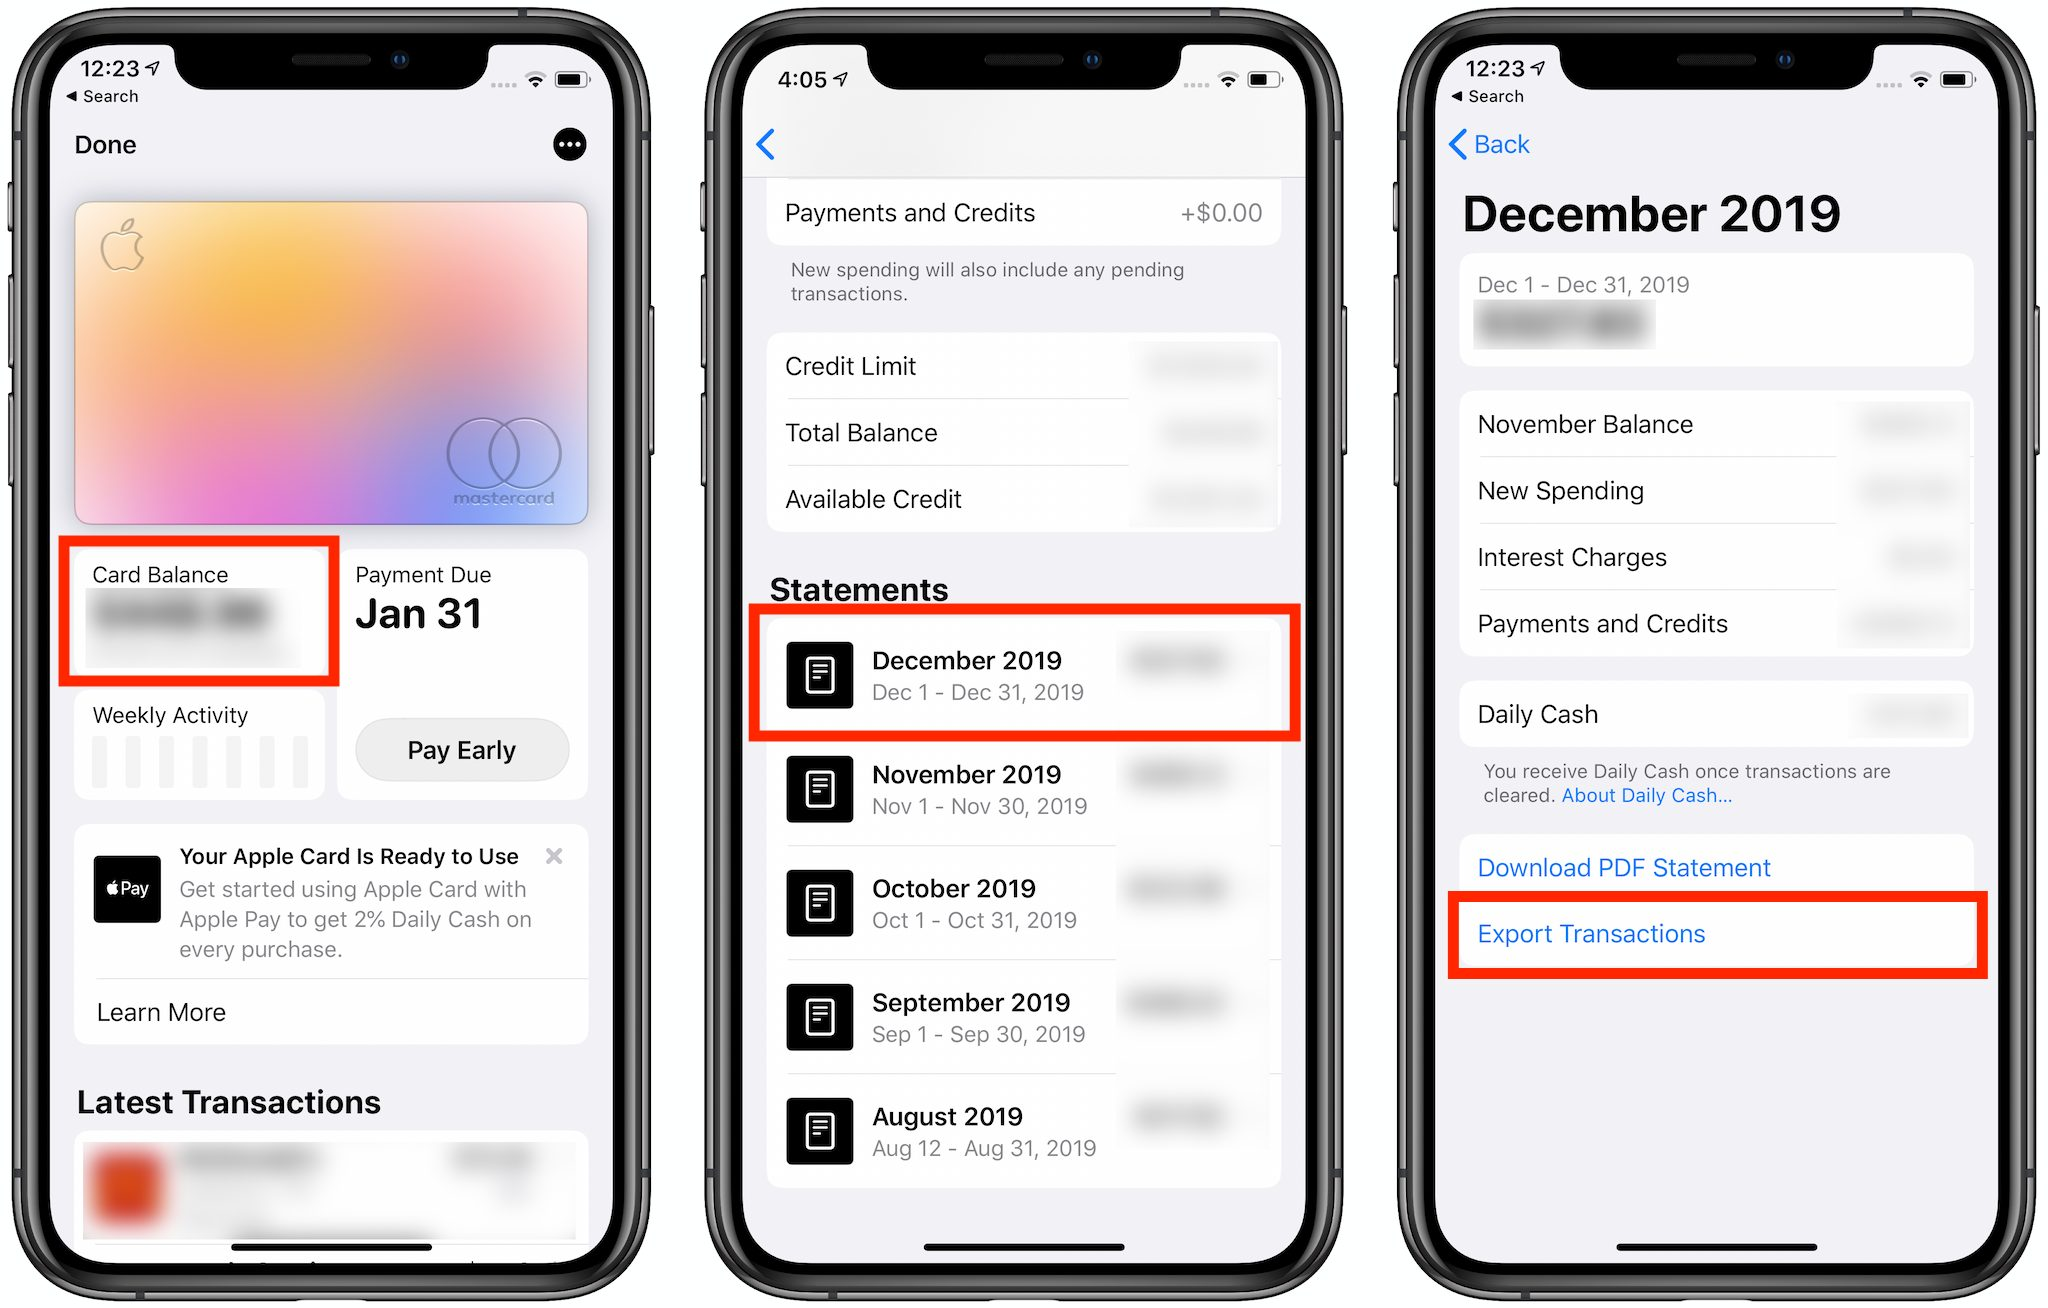 Apple Card (Finally) Gains CSV Statement Export - TidBITS